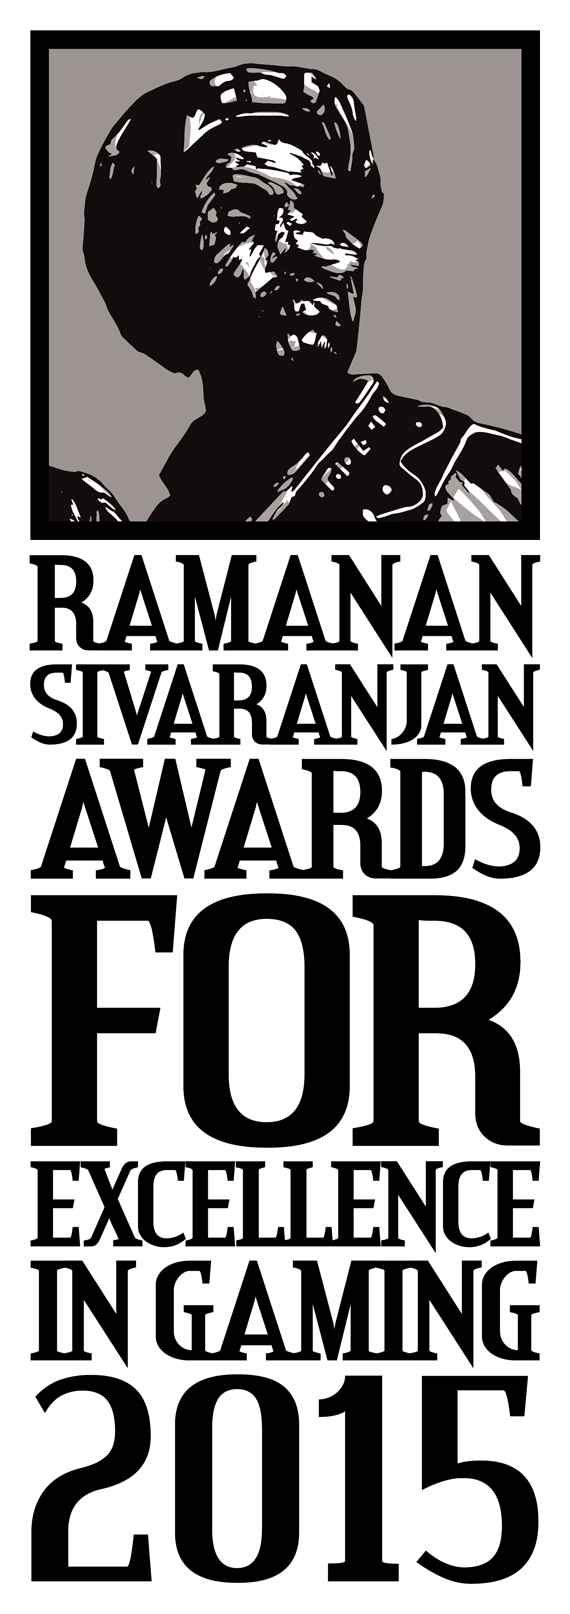 The Ramanan Sivaranjan Award for Excellence in Gaming 2015